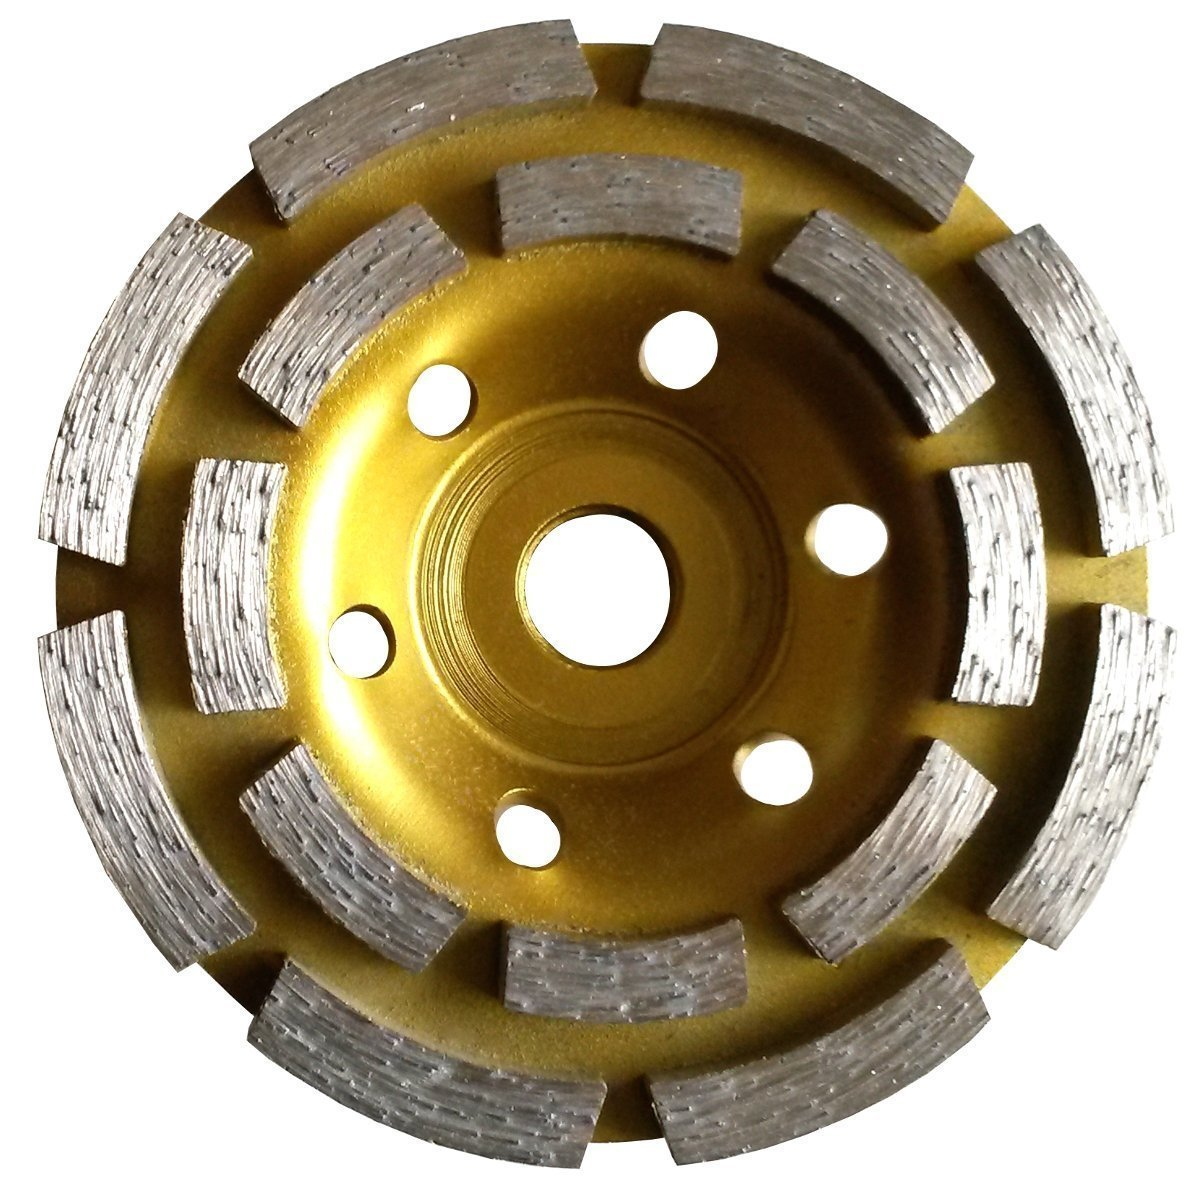 4-1//2 DIAMOND GRINDING CUP WHEEL  50//60 GRIT DRY SHAPING SMOOTHING CONCRETE